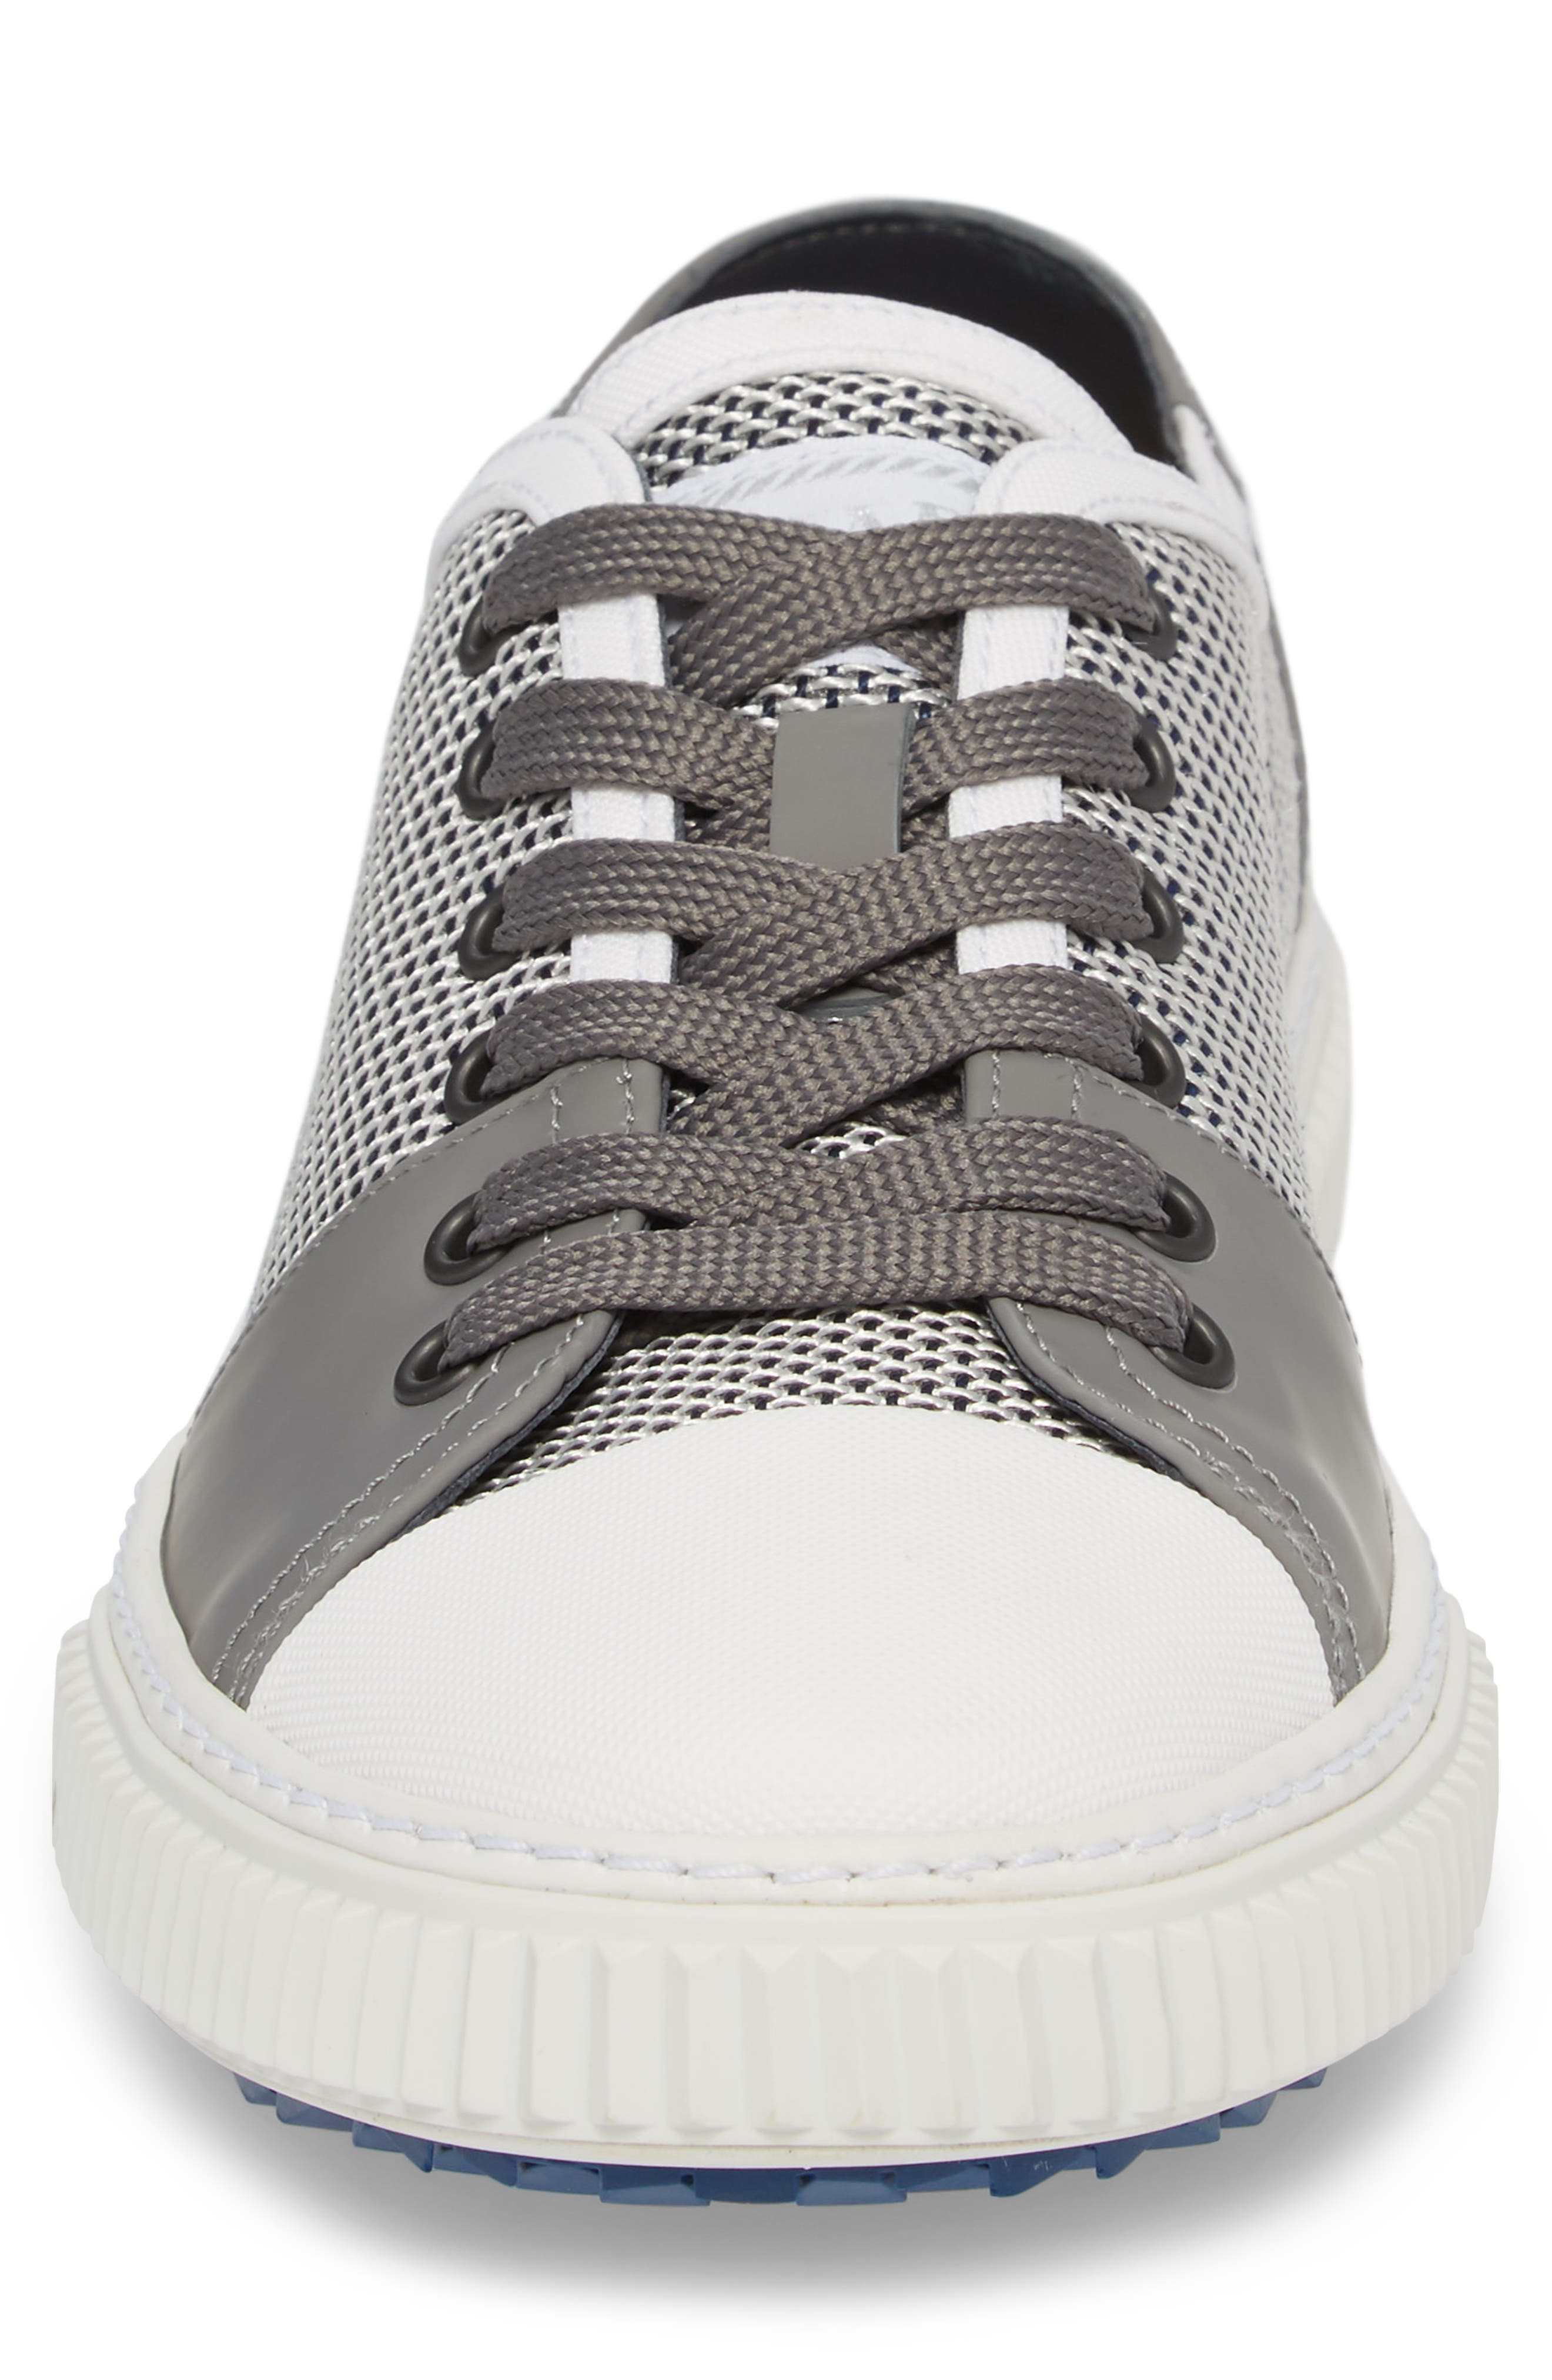 Linea Rossa Low-Top Sneaker,                             Alternate thumbnail 4, color,                             122